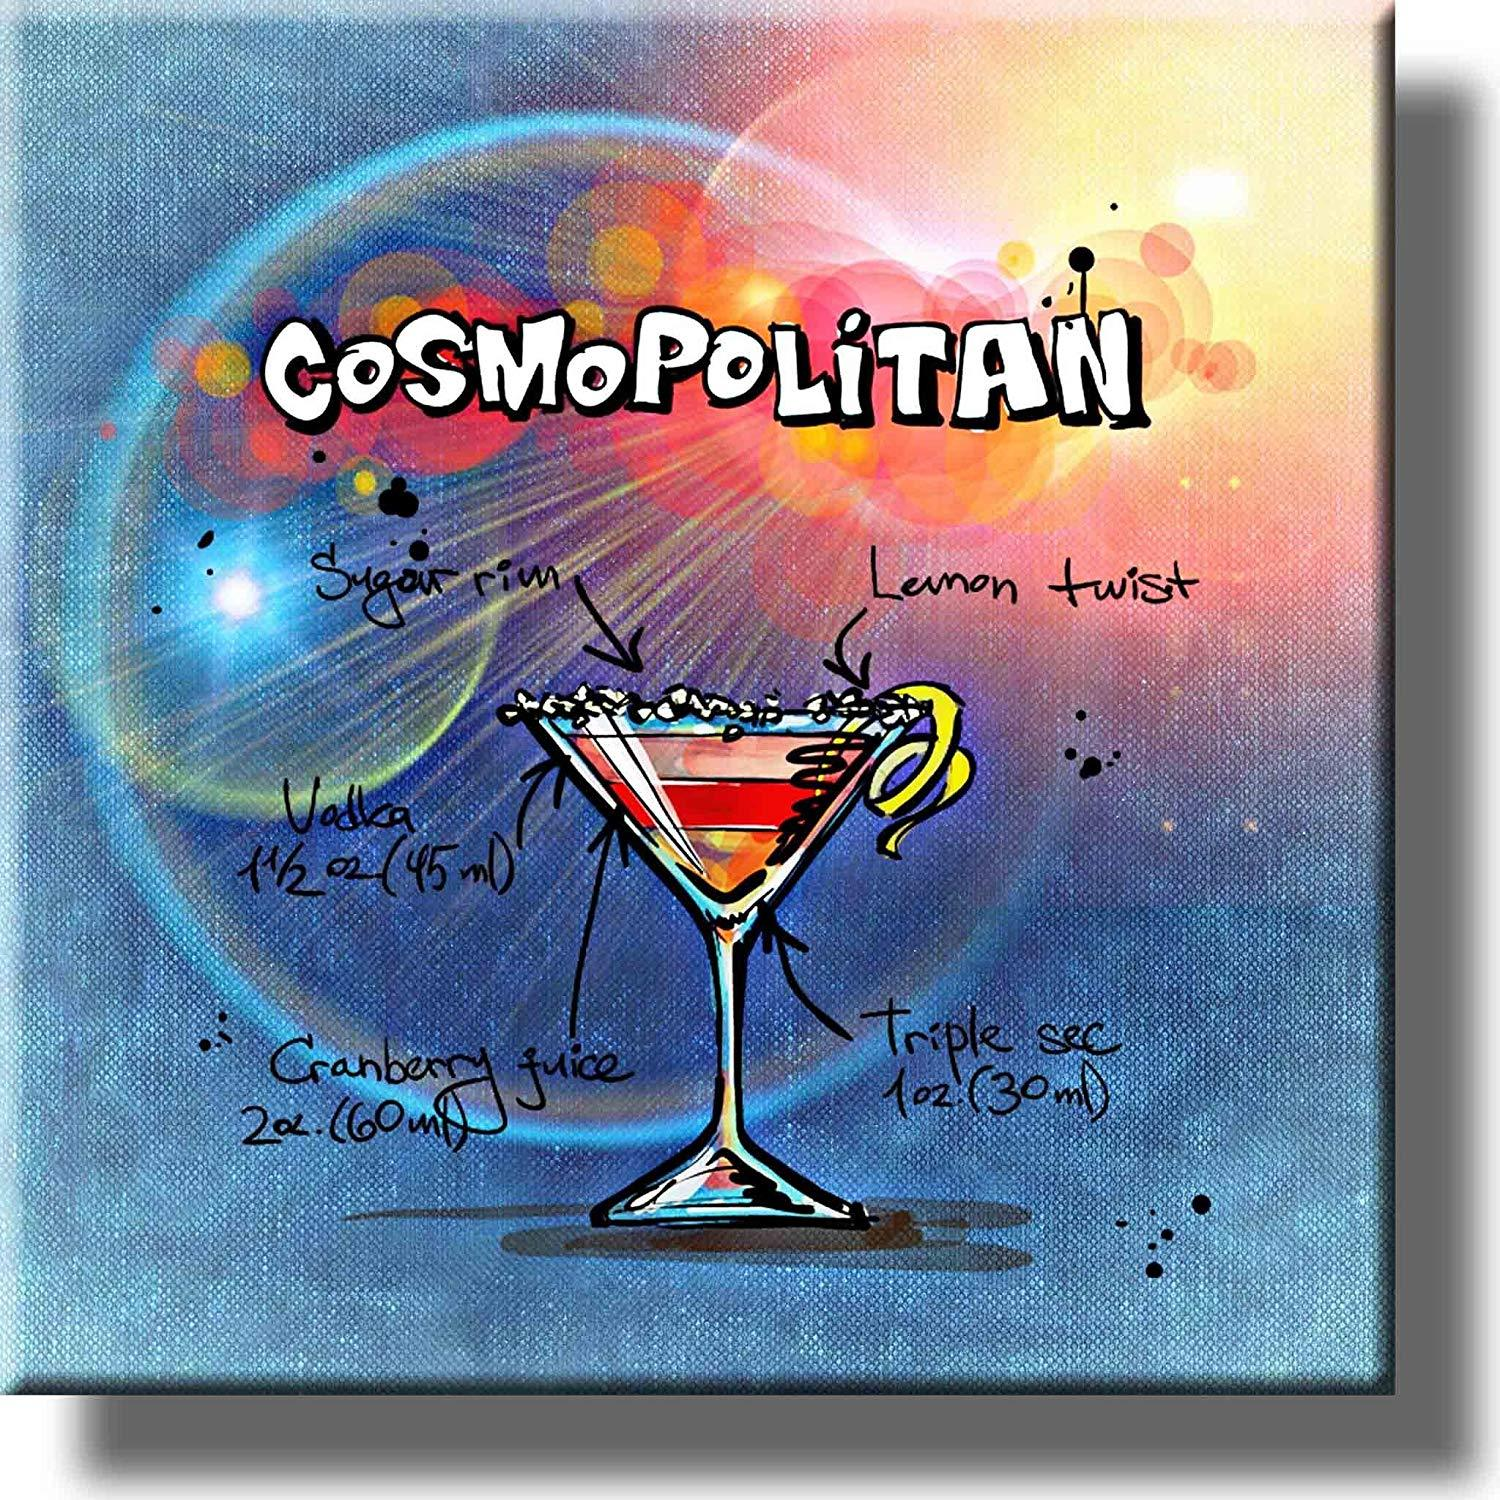 Cosmopolitan Cocktail Recipe Drink Picture On Stretched Canvas Wall Art Decor Ready To Hang Walmart Com Walmart Com